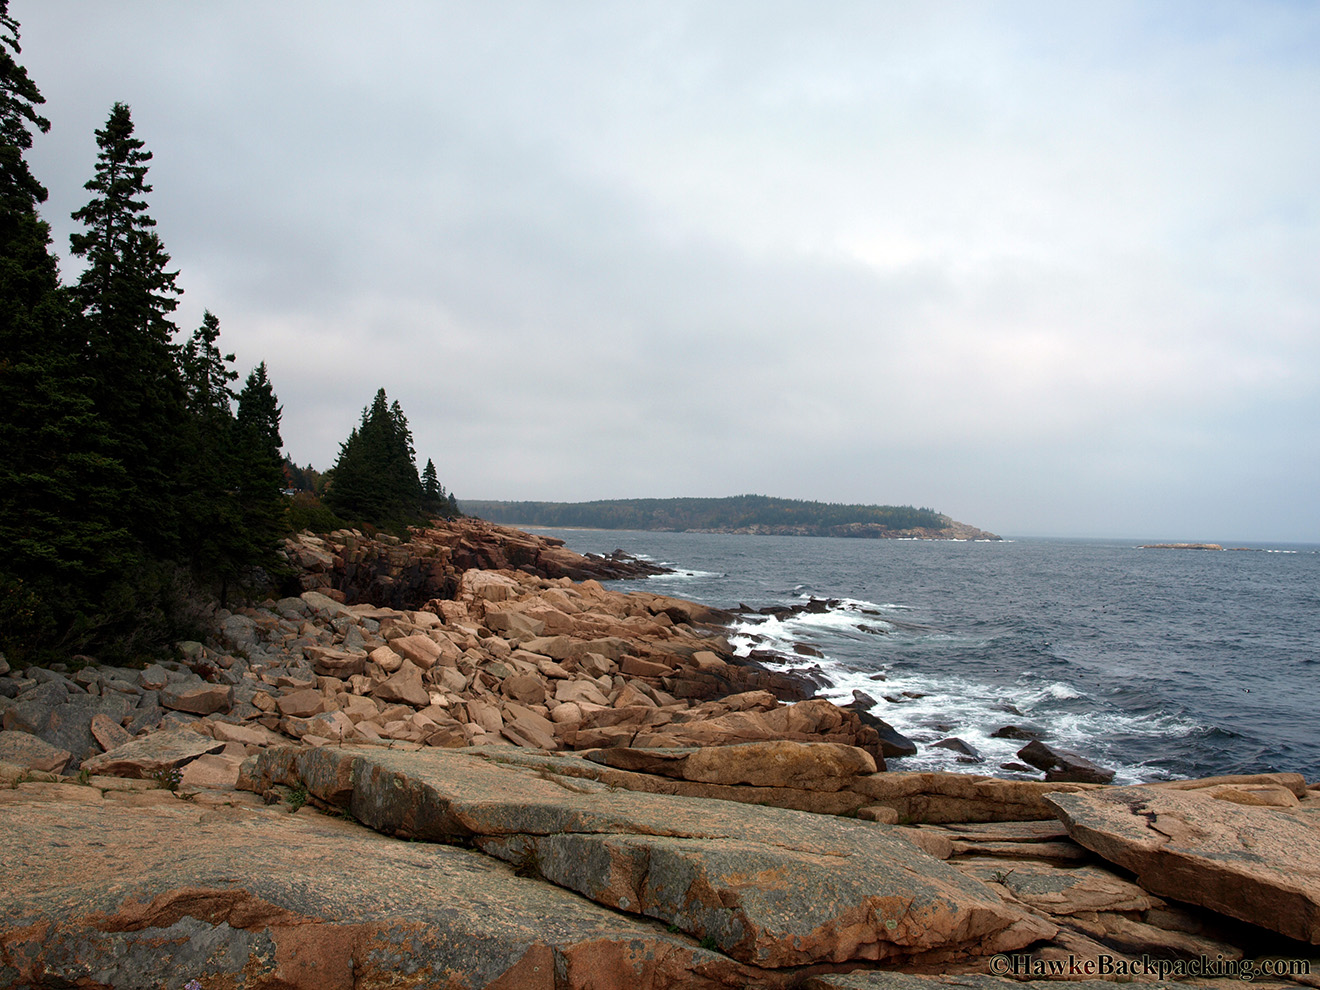 City Of Lafayette >> Acadia National Park - HawkeBackpacking.com